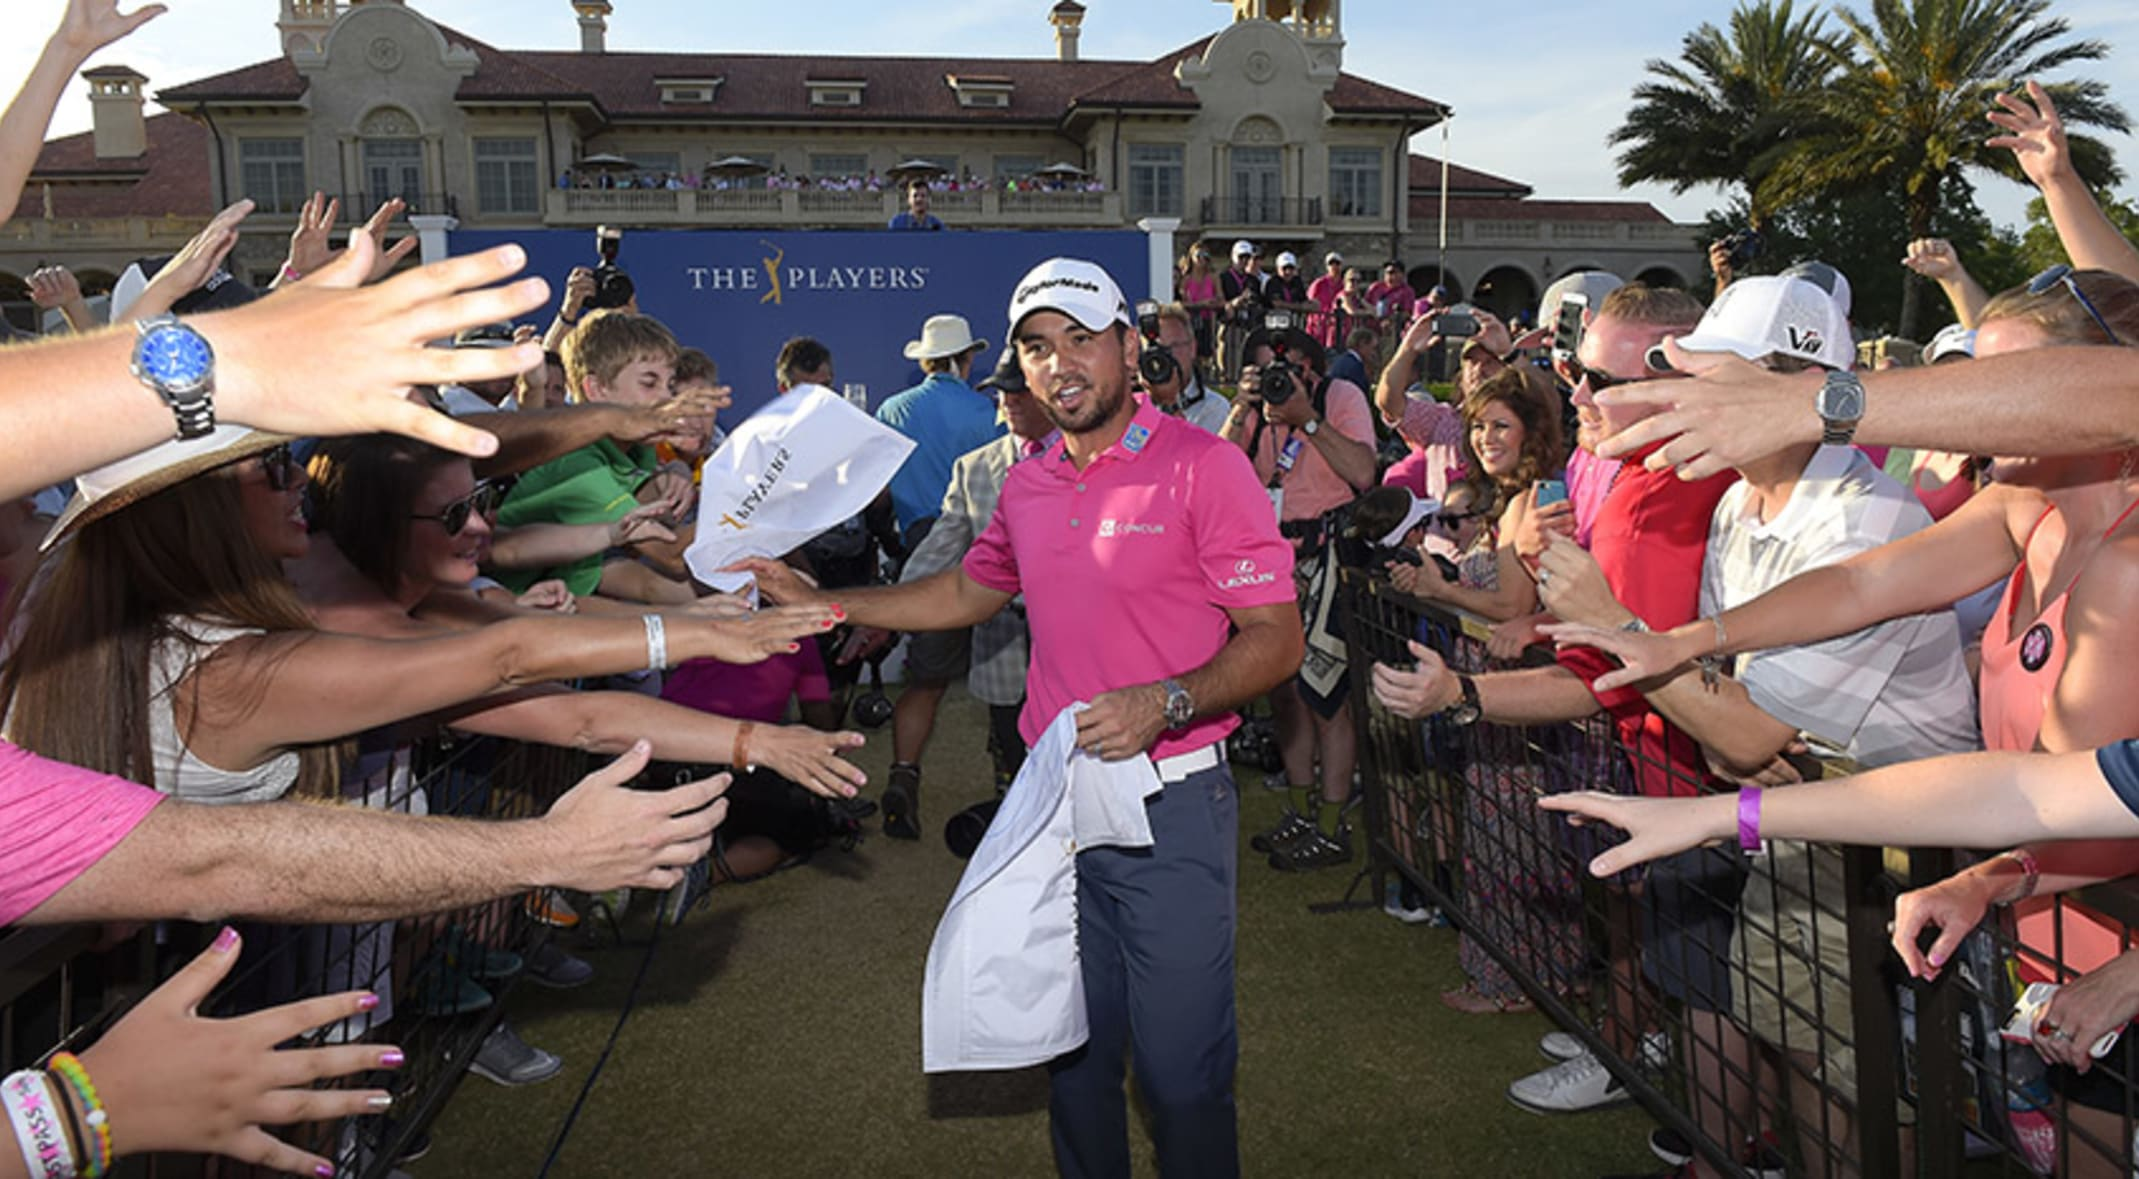 pga tour releases schedule for 2016-17 season